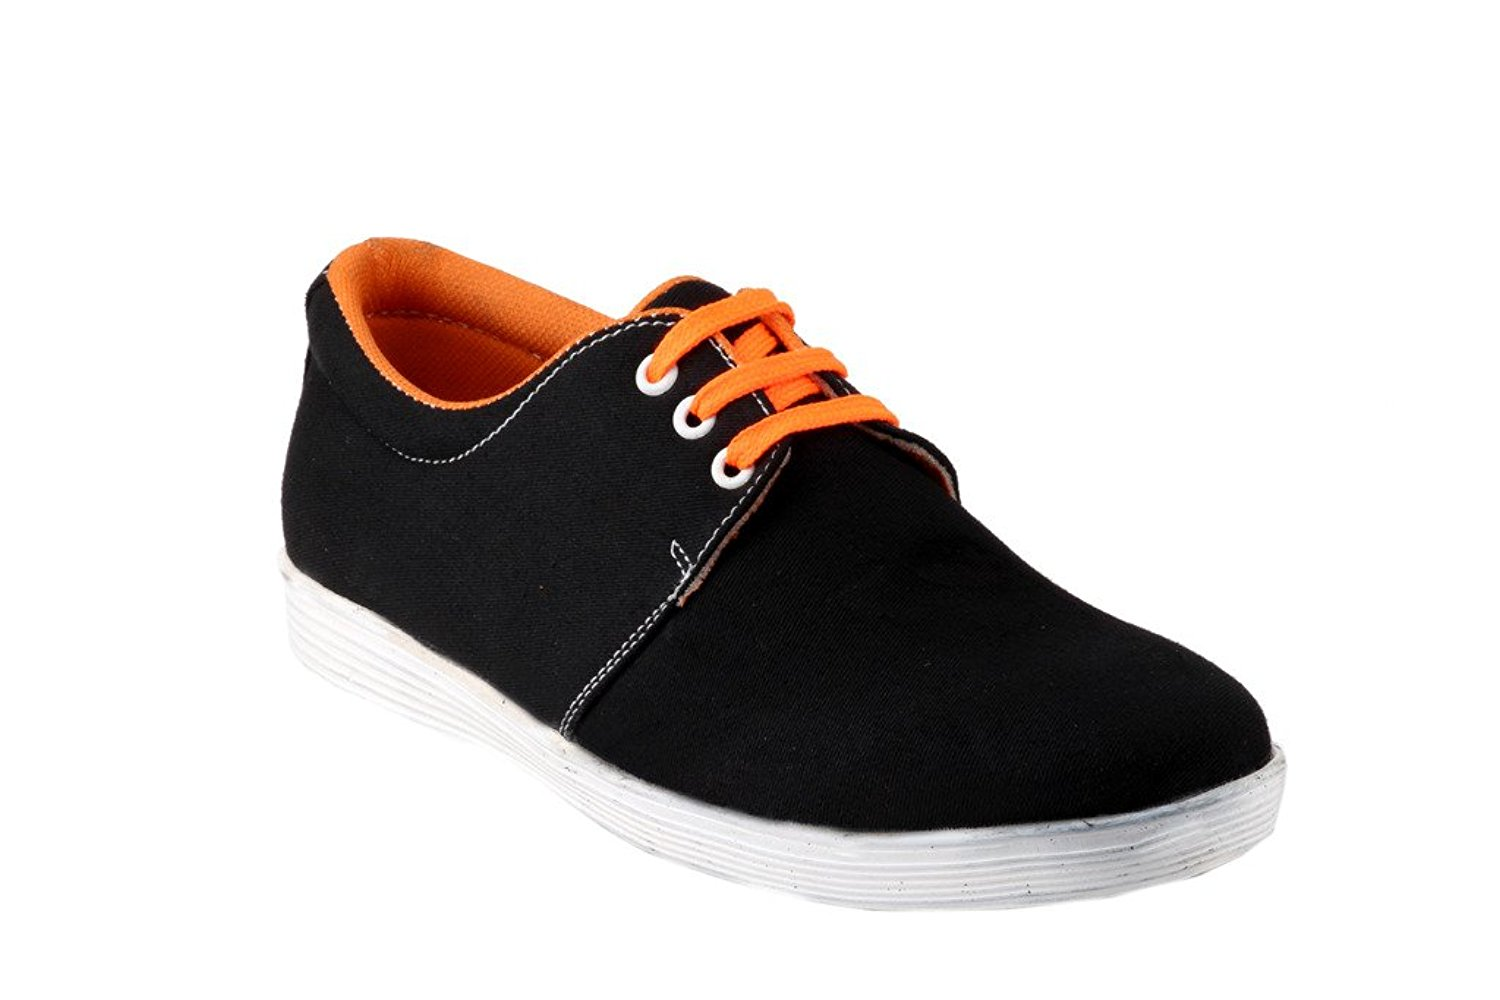 zebra s style casual shoes at rs 299